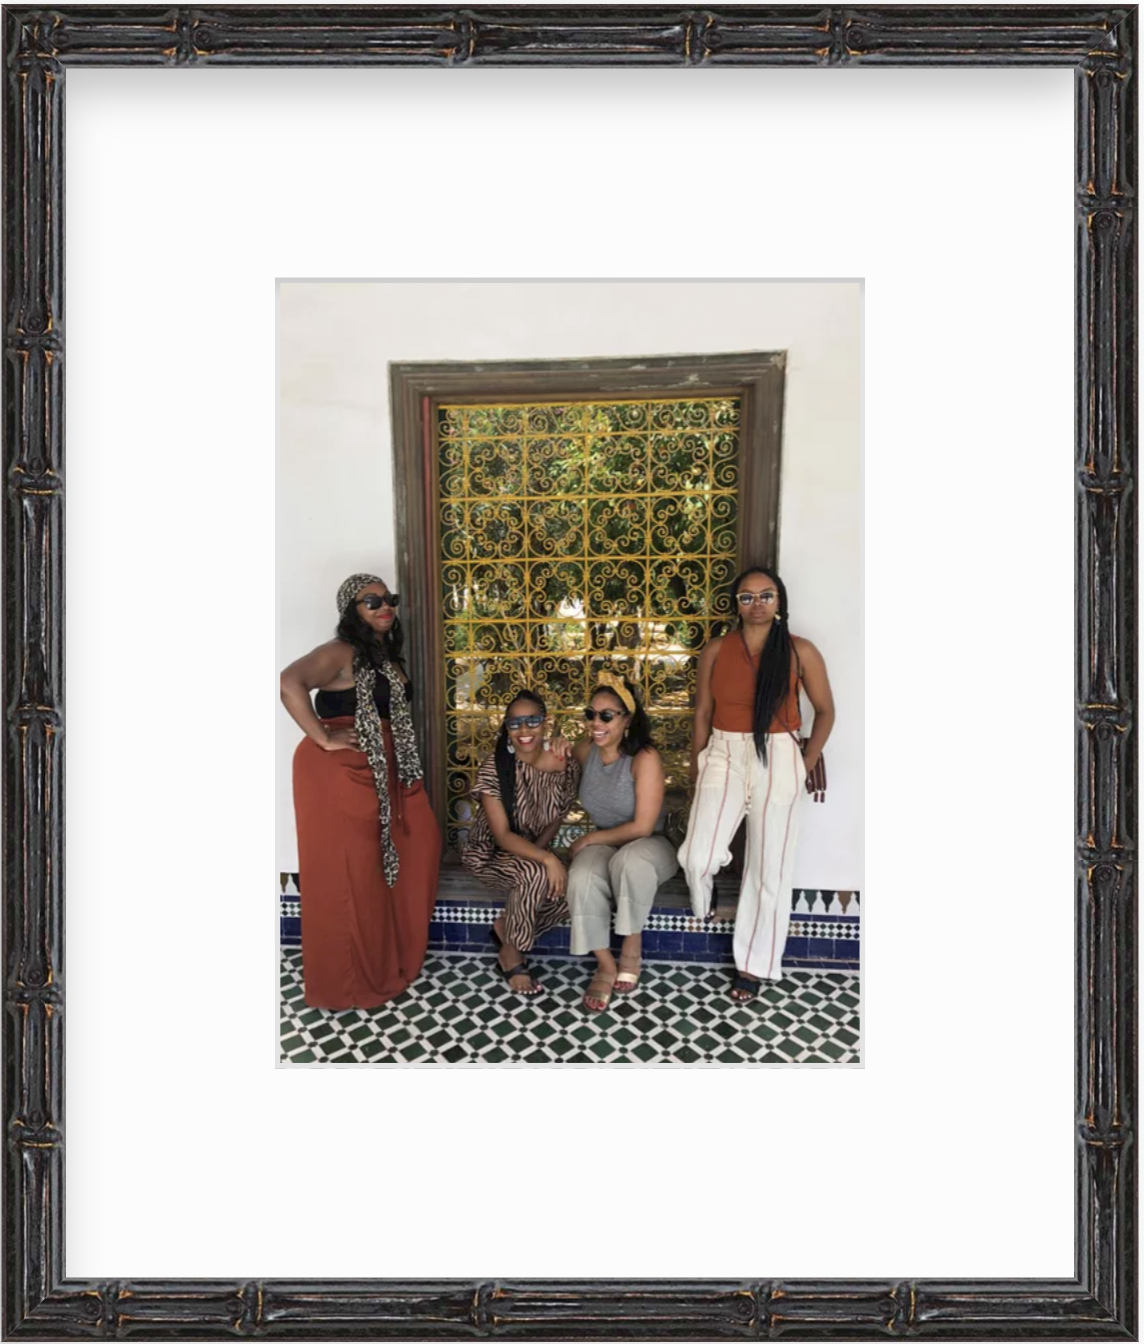 four women at Bahia palace in Morocco